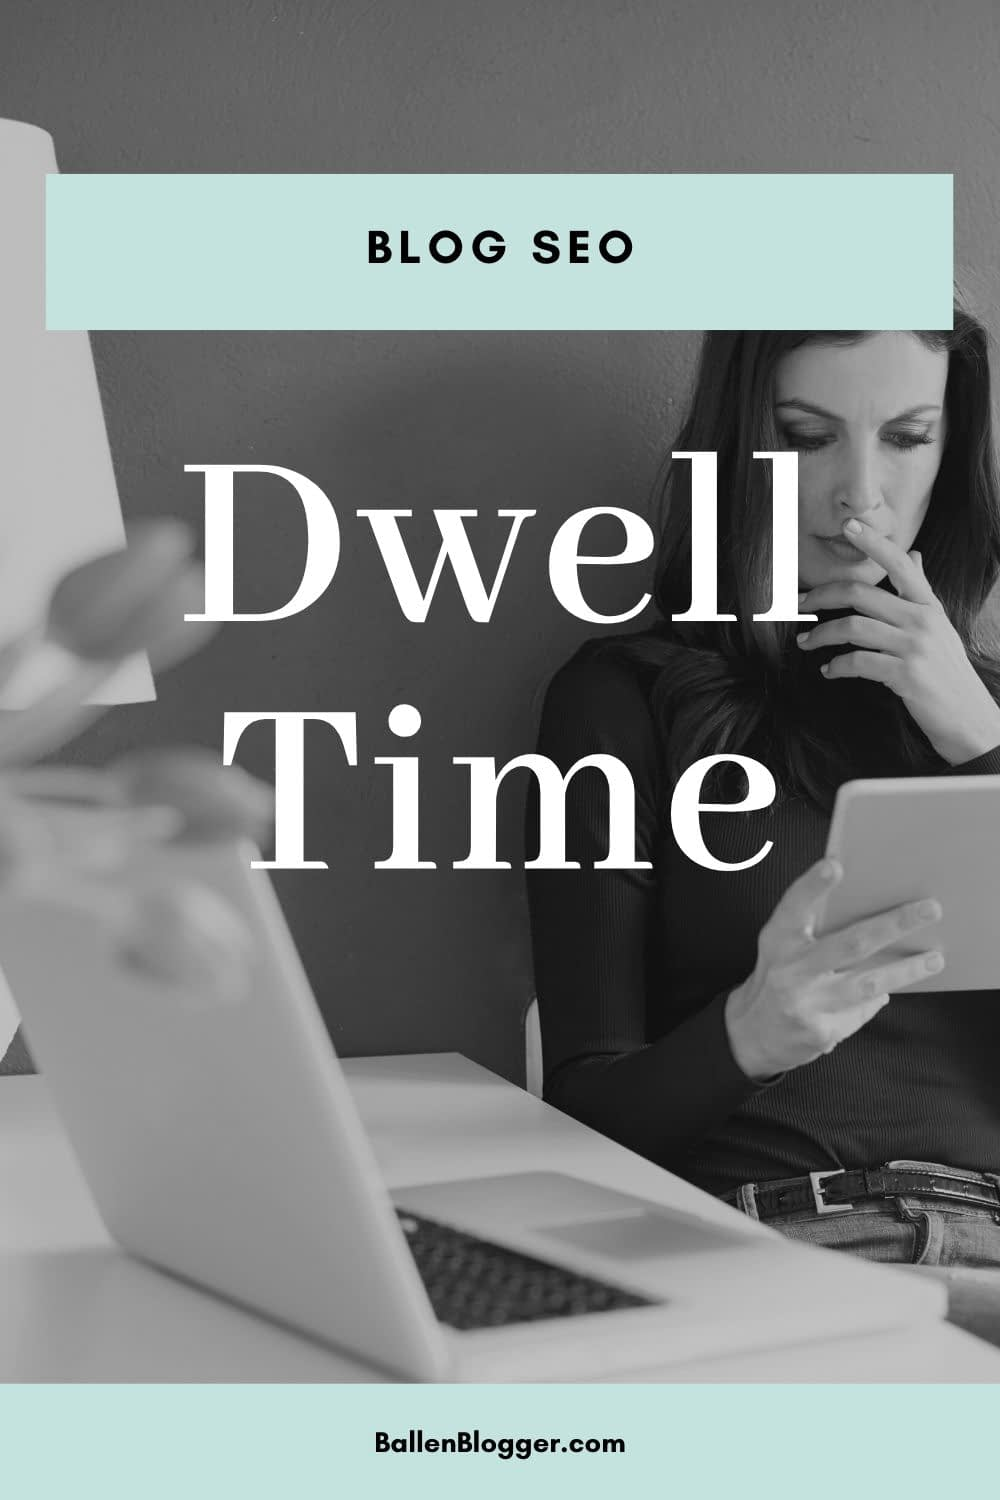 Dwell time refers to the length of time visitors stay on a web page after clicking its organic listing but before returning to the search results. Whether it's on Google, Bing or any other search engine, all online searches are performed with the intent of finding specific information.